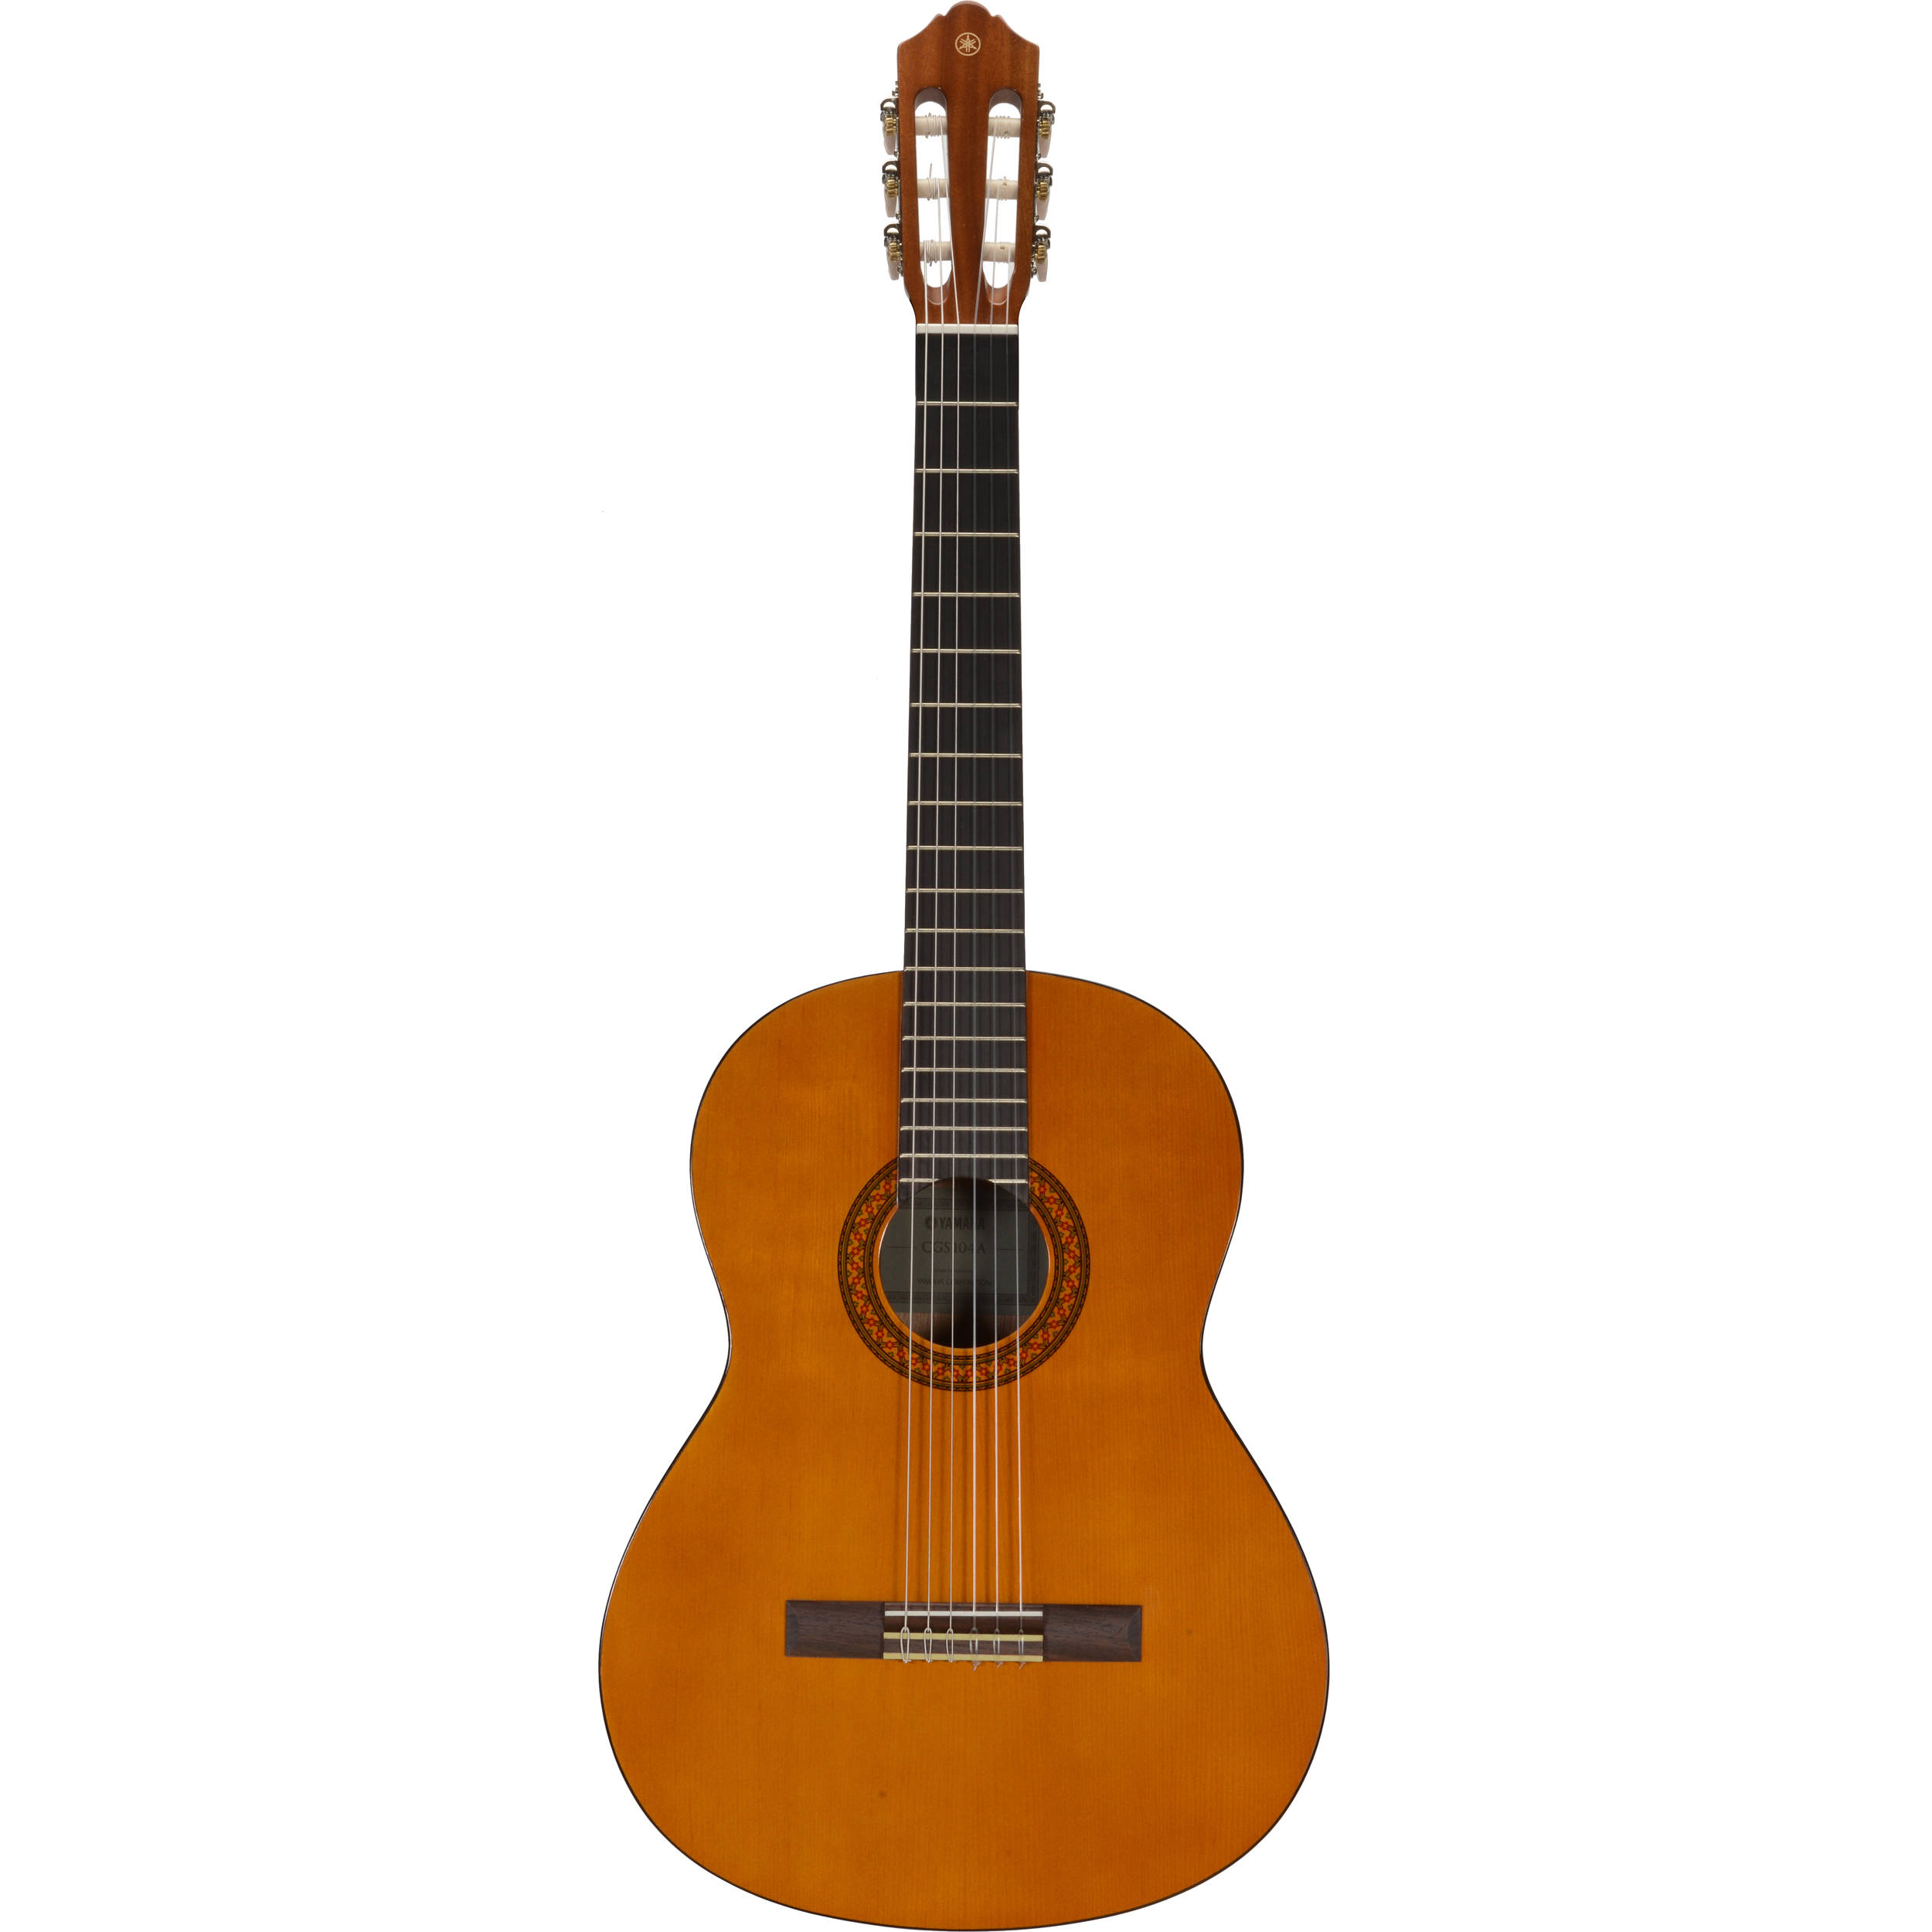 yamaha cgs104aii nylon string classical guitar natural. Black Bedroom Furniture Sets. Home Design Ideas